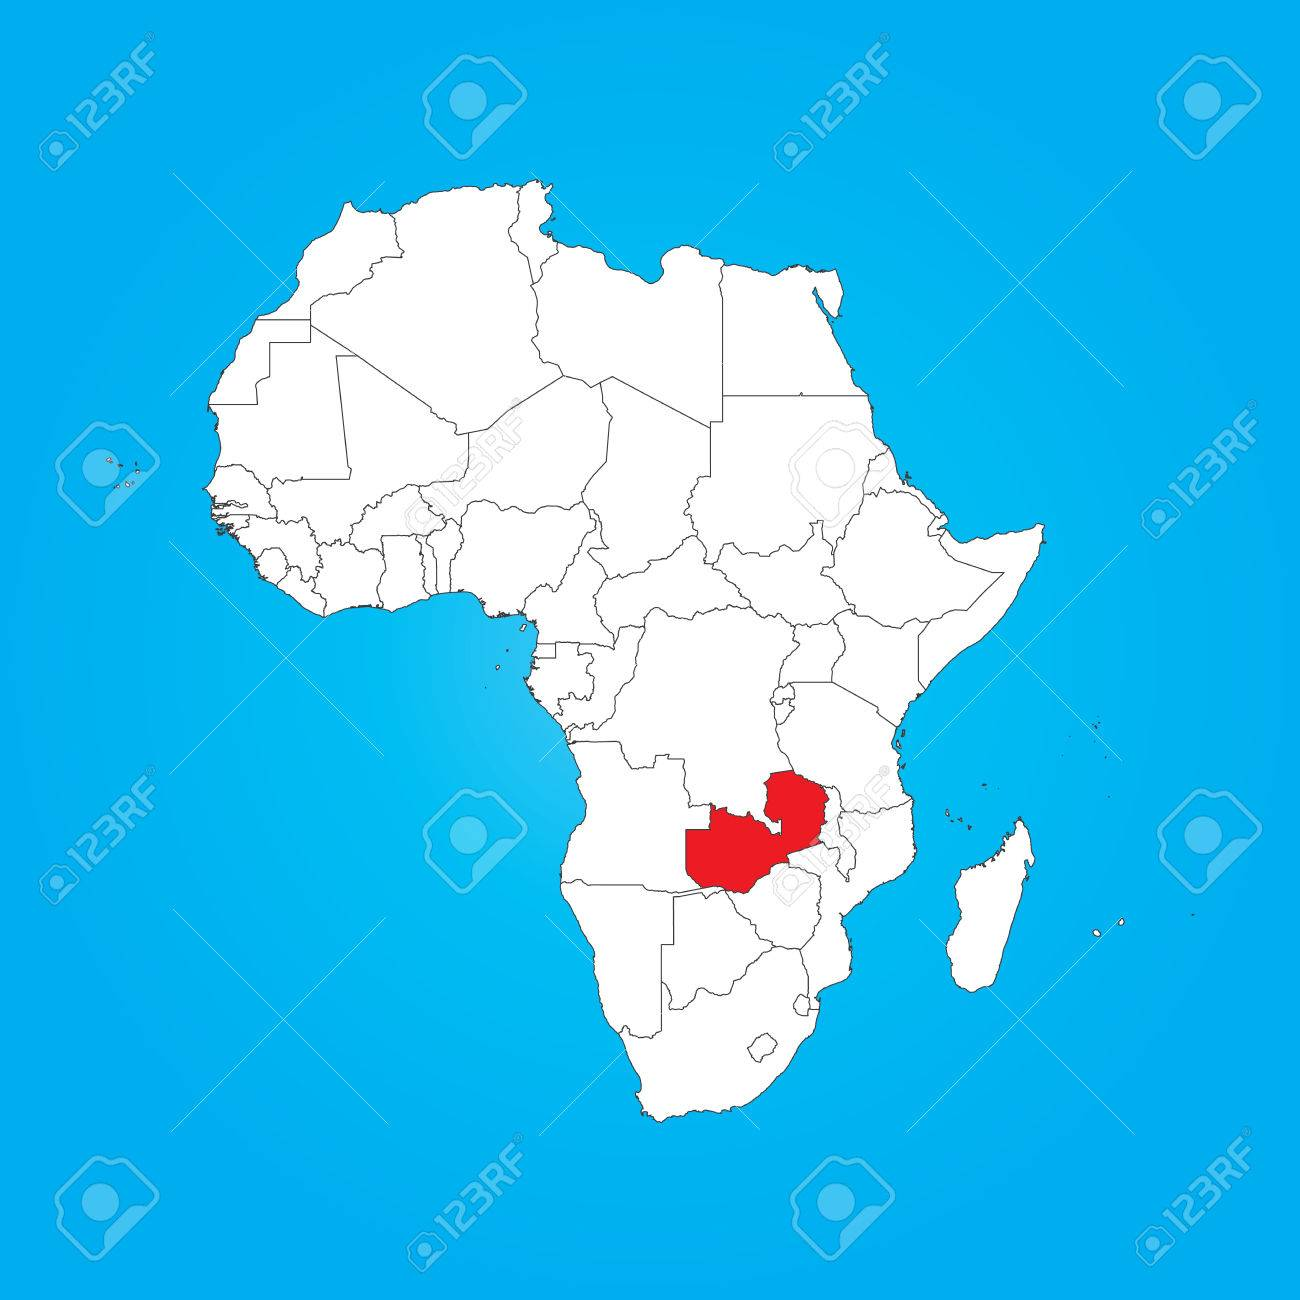 A Map Of Africa With A Selected Country Of Zambia Stock Photo ...